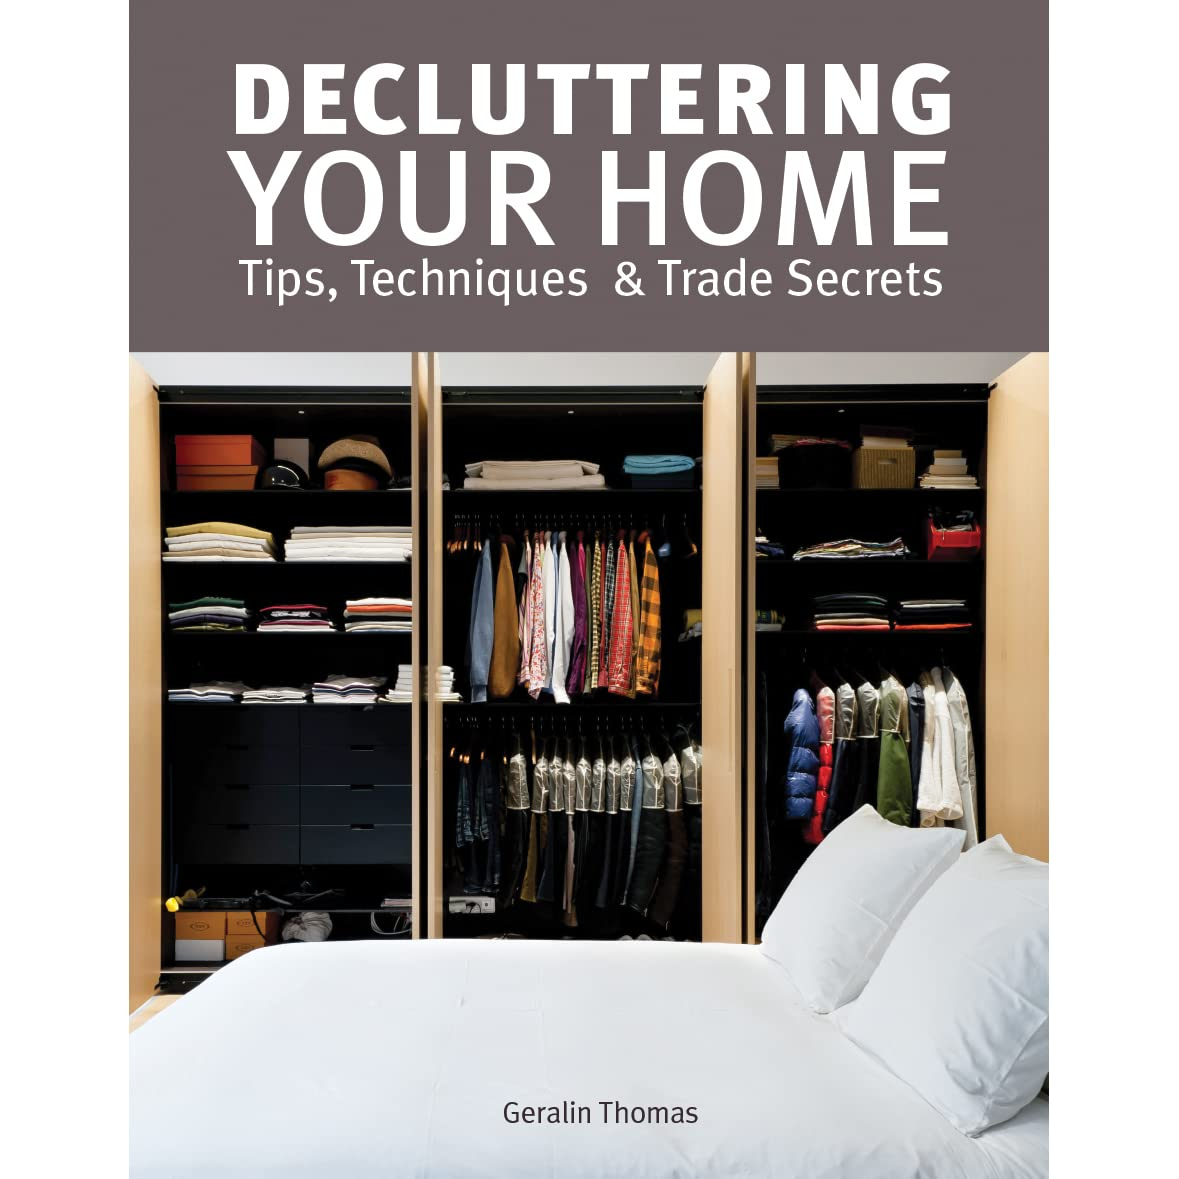 book giveaway for decluttering your home tips techniques